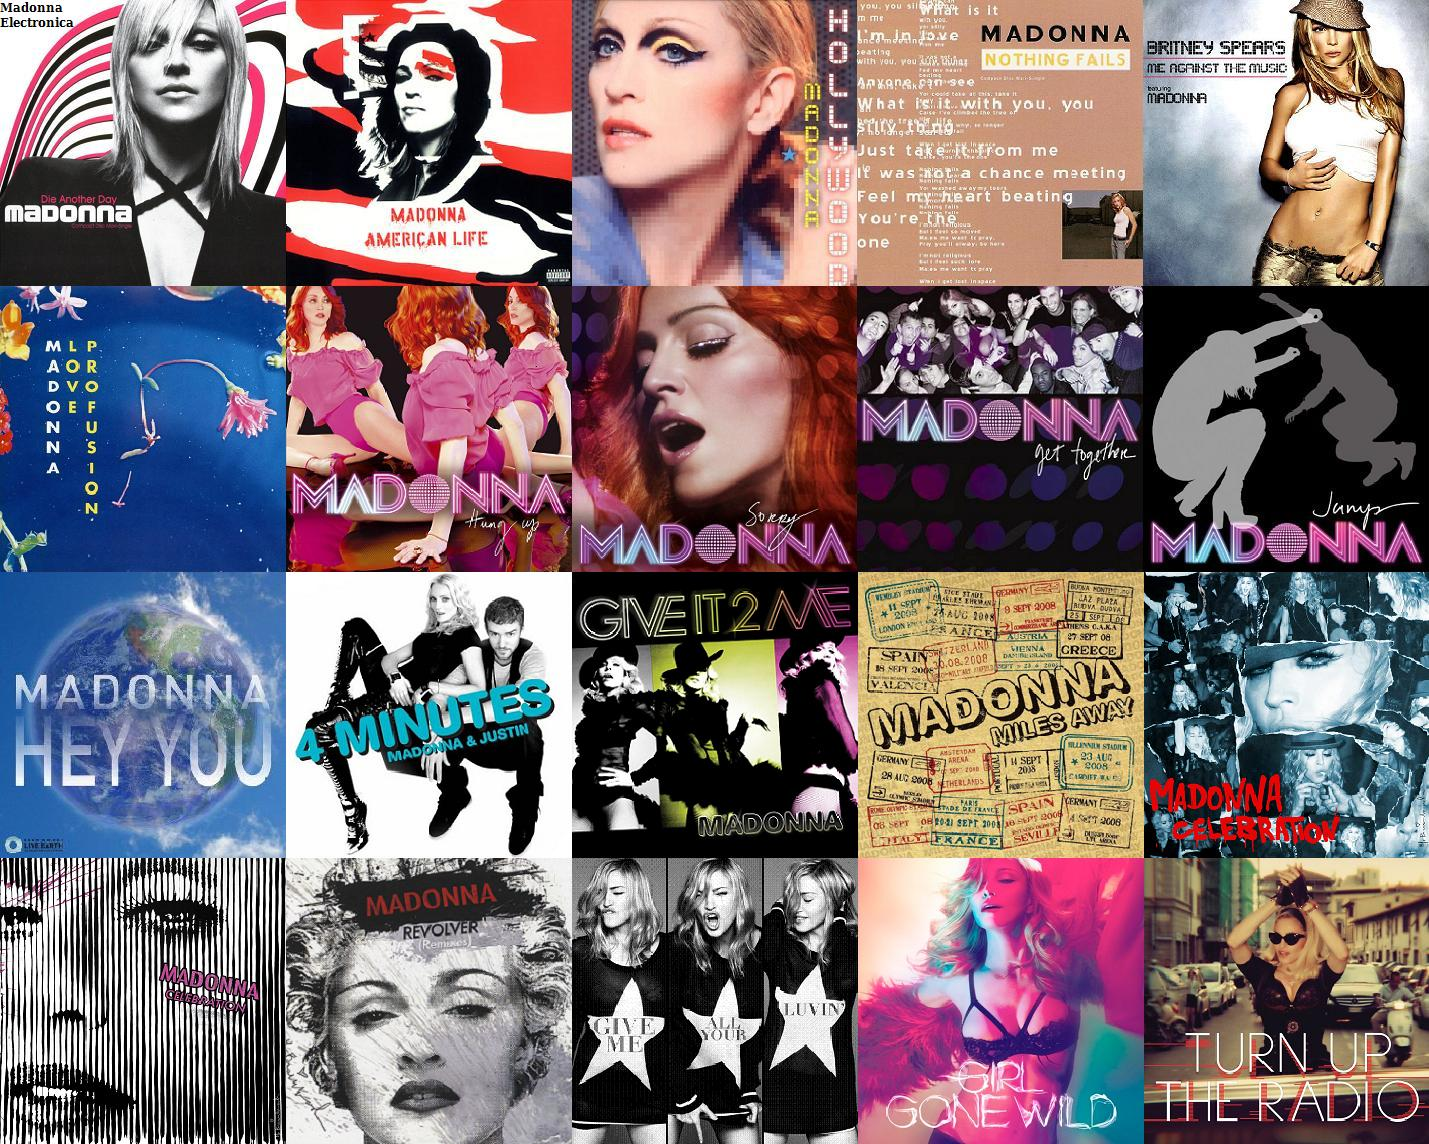 madonna singles covers 2003-2012 (Madonna Electronica)